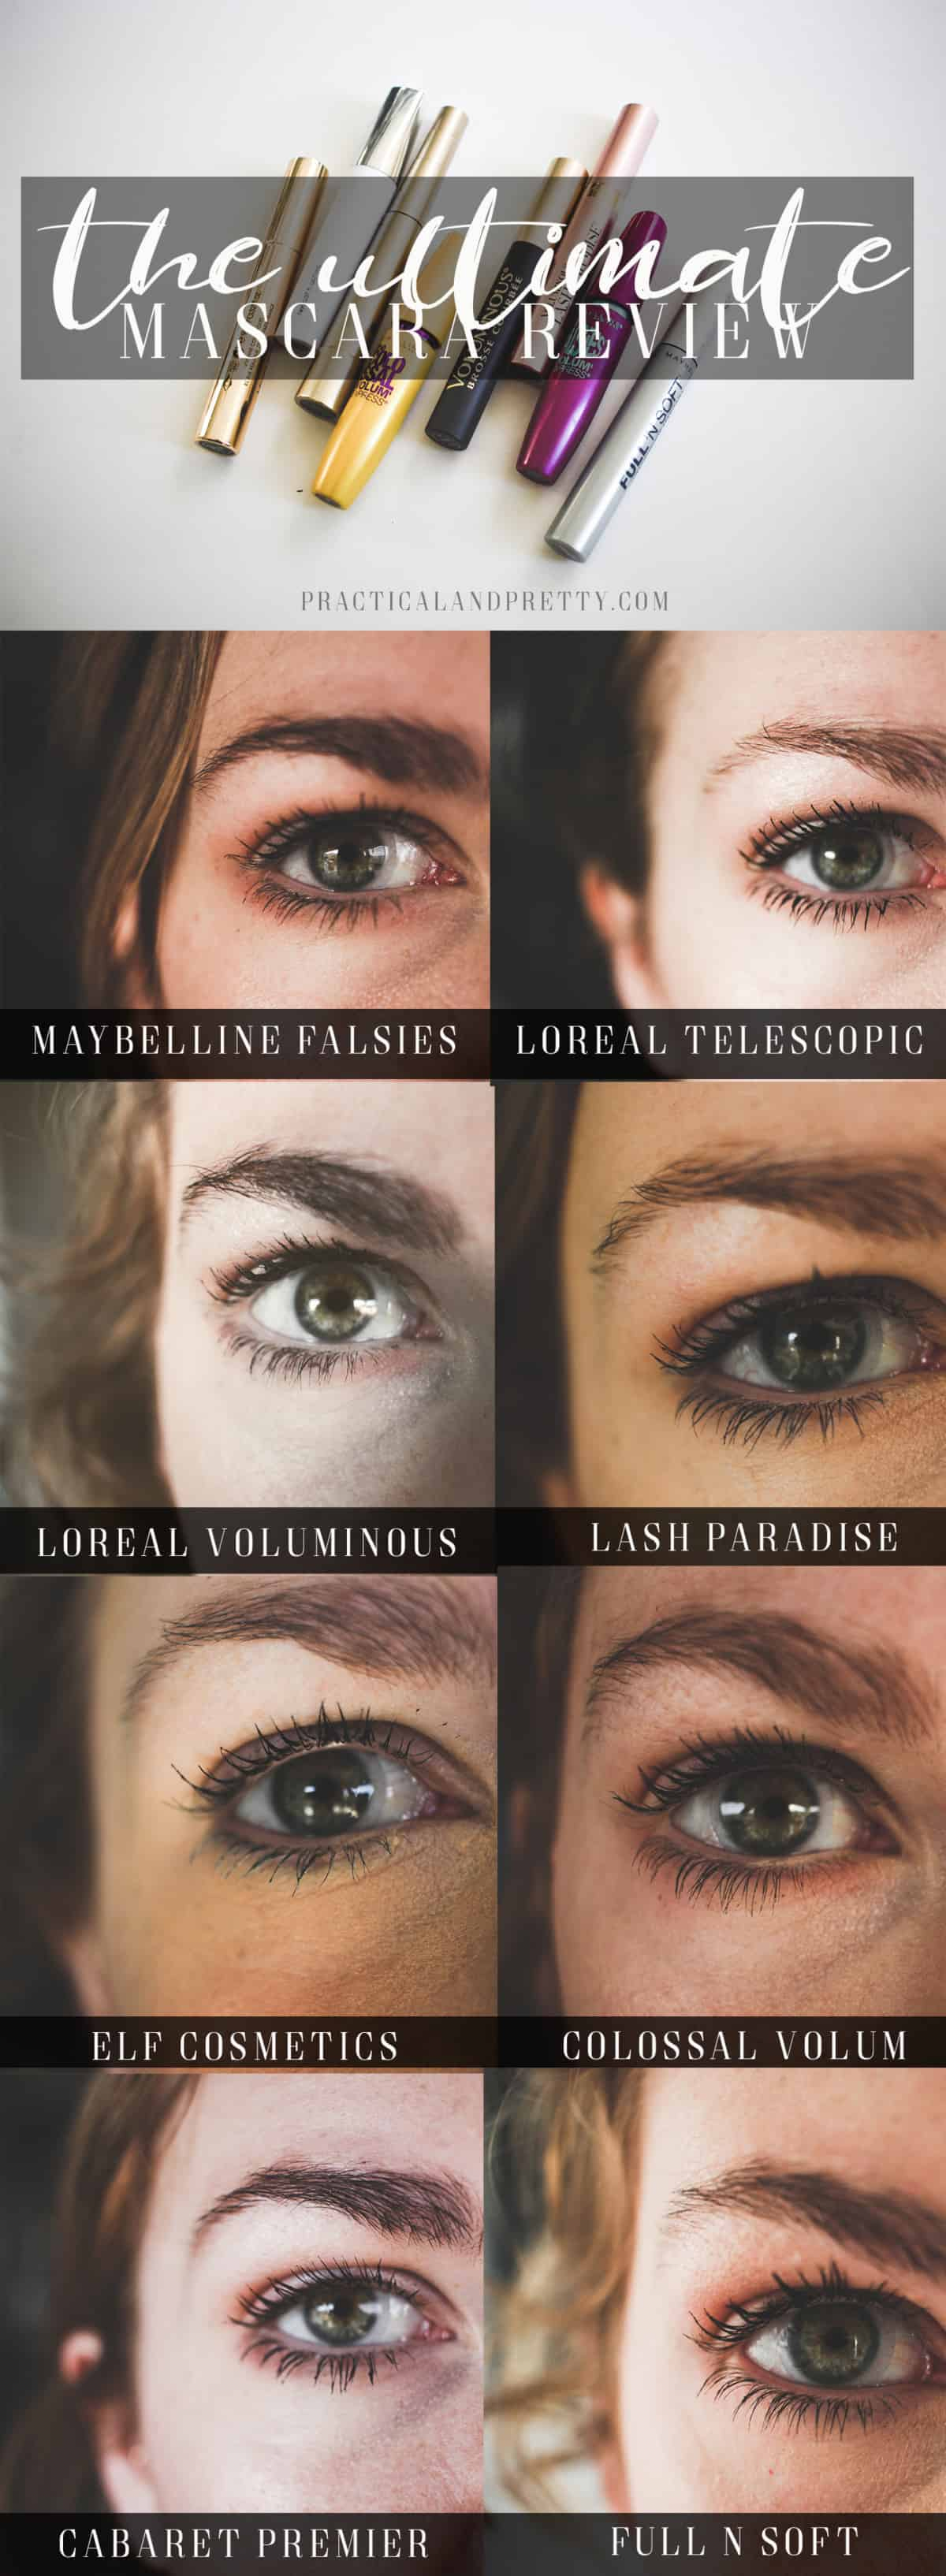 I went through and compared everyone's favorite drugstore mascaras. Let's find your dream mascara together